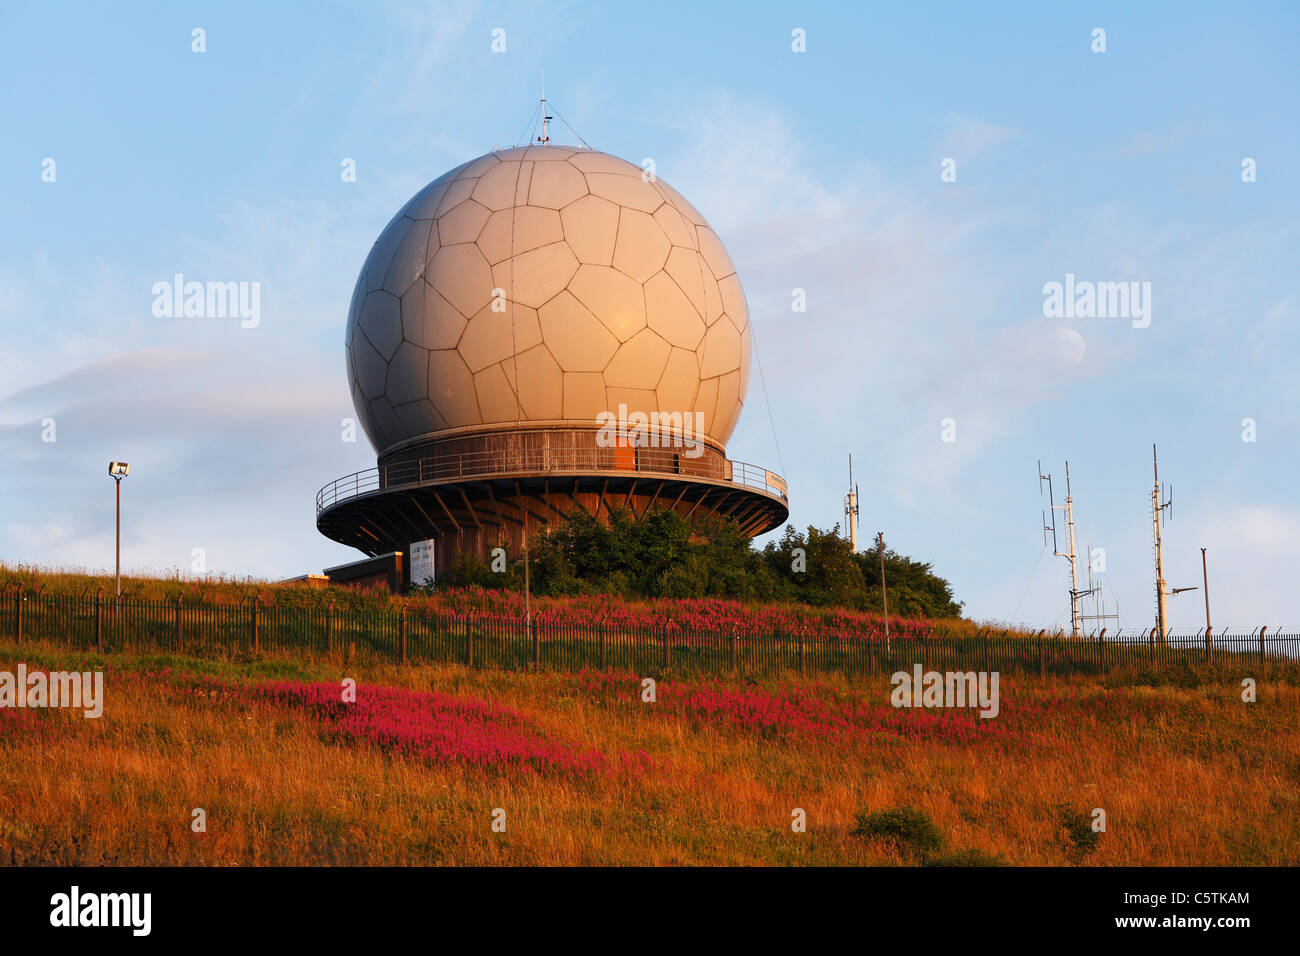 Germany, Hesse, Rhoen, View of radar dome at dusk - Stock Image